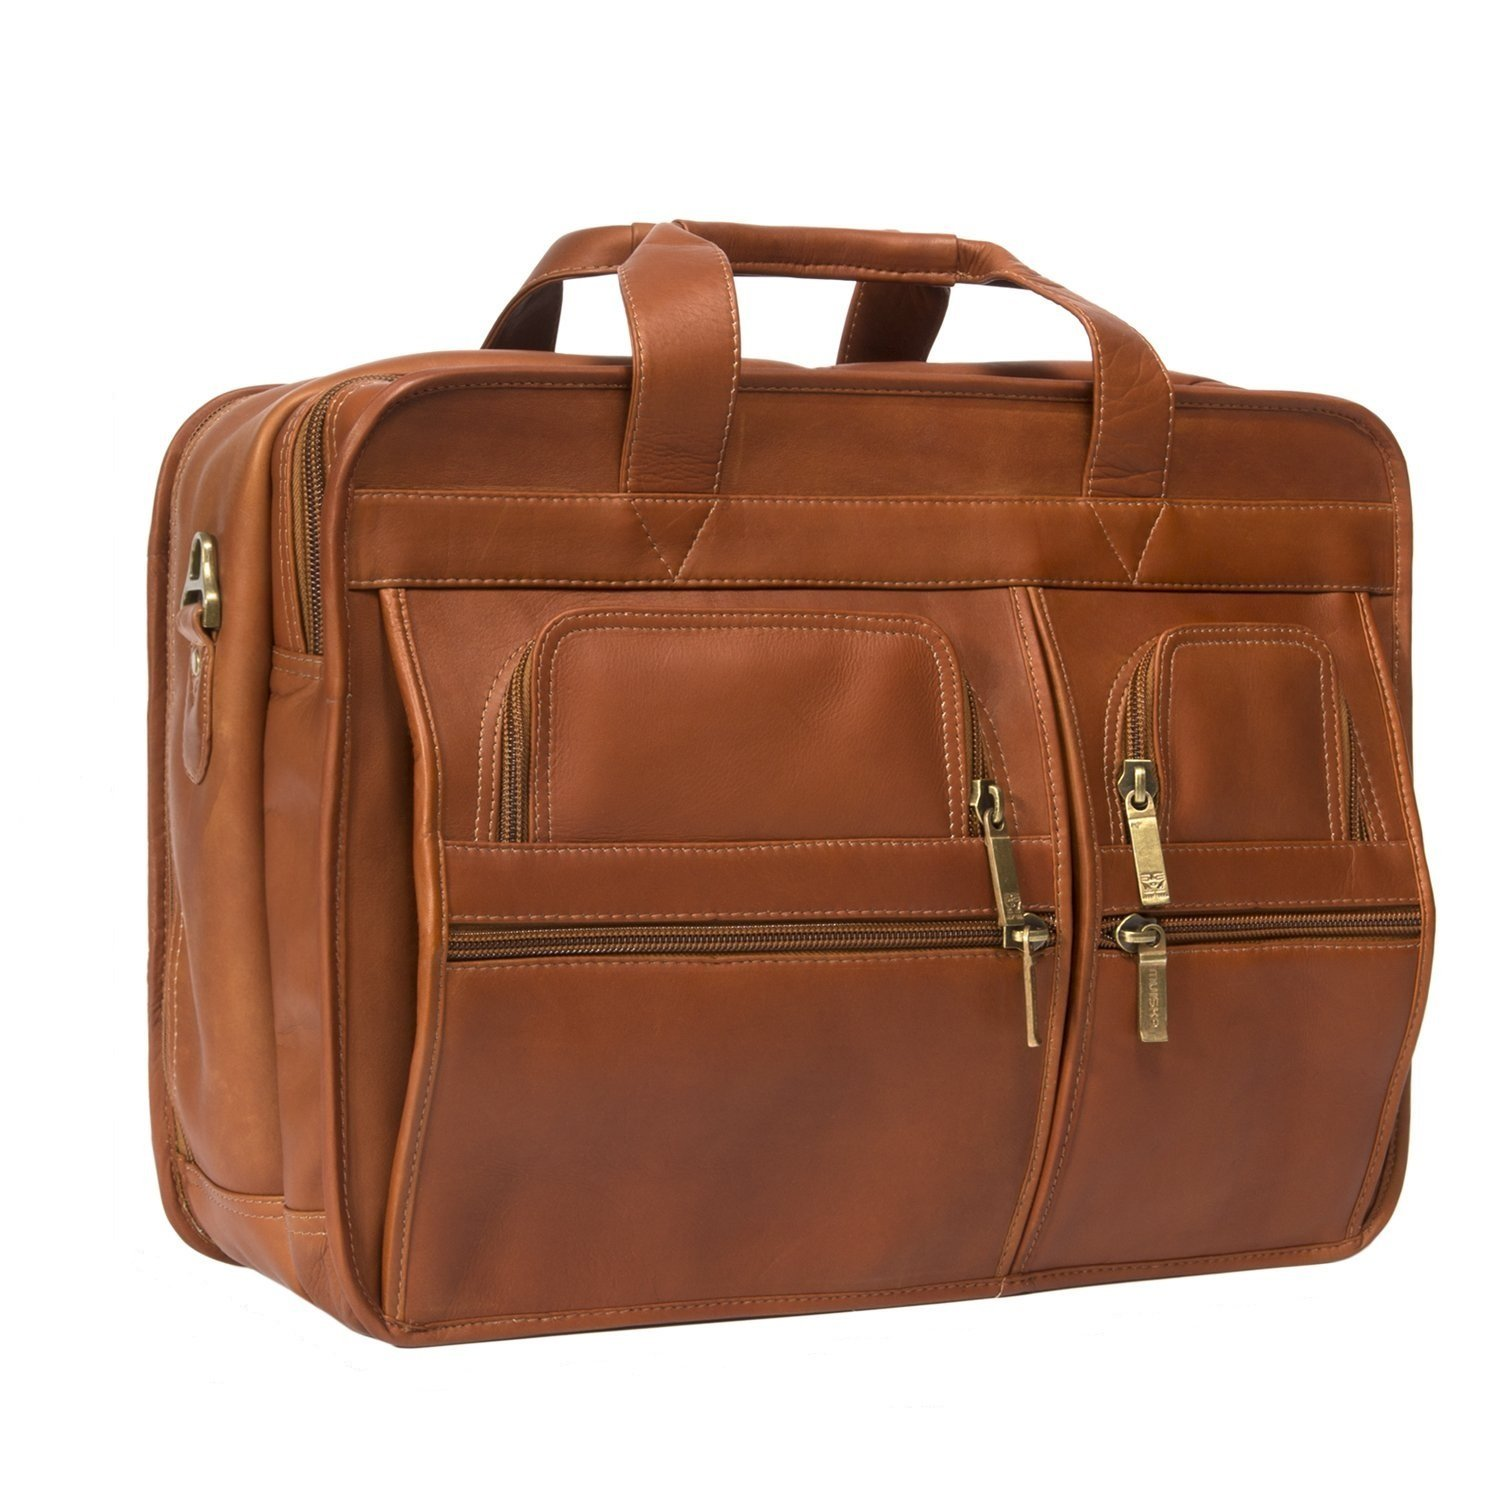 Luggage Depot USA, LLC Muiska 17 inch Double Compartment Leather Laptop Briefcase, Saddle, One Size